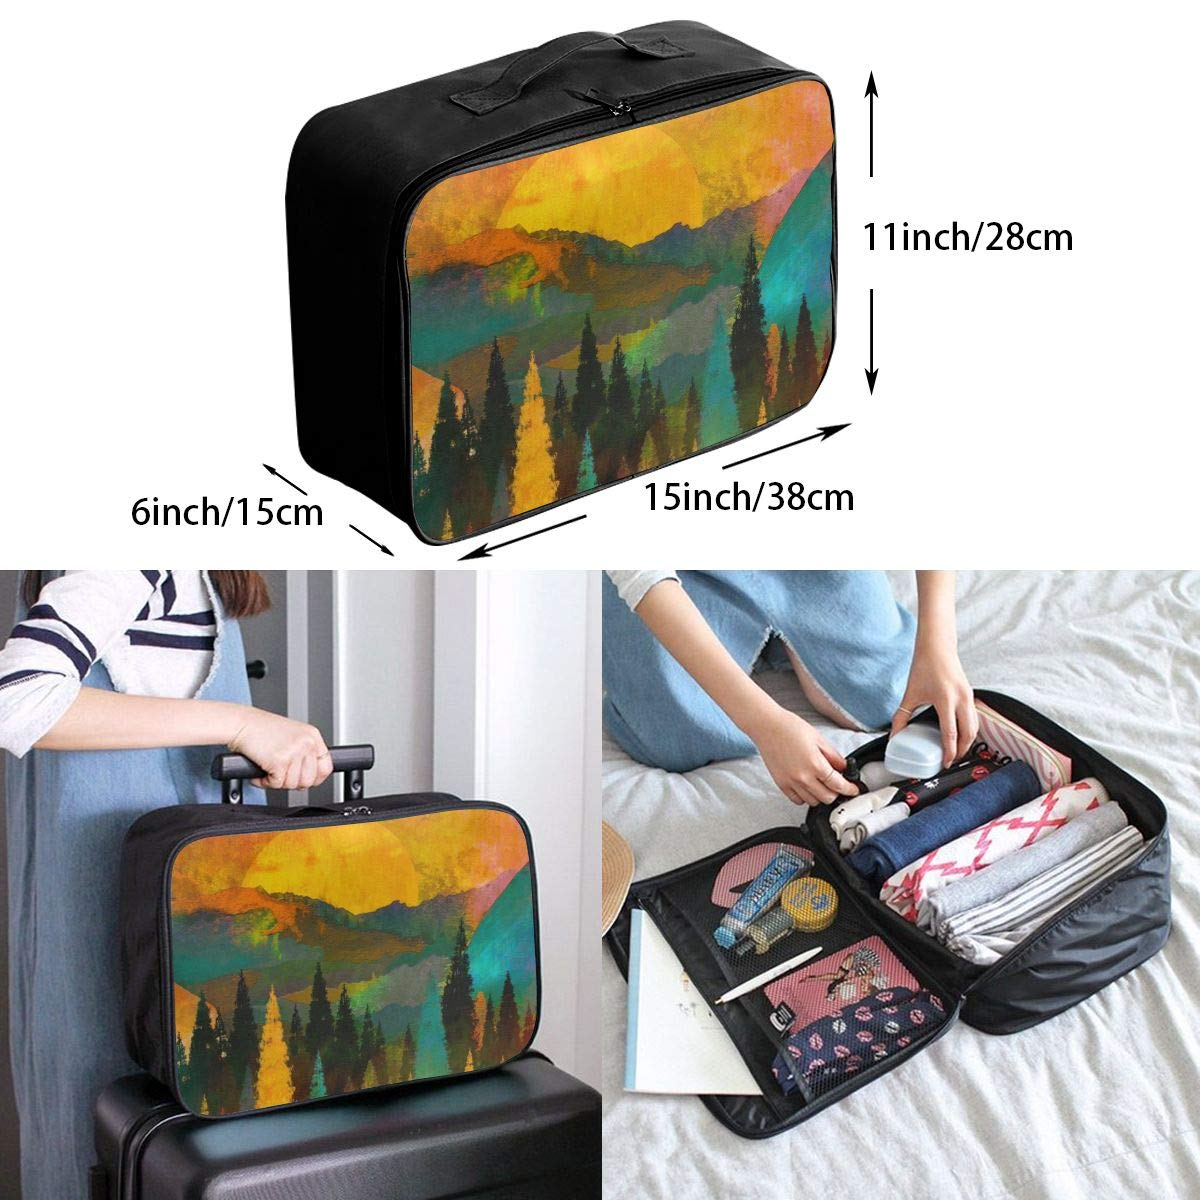 Tree Mountain Sun Sunrise Travel Lightweight Waterproof Foldable Storage Carry Luggage Large Capacity Portable Luggage Bag Duffel Bag